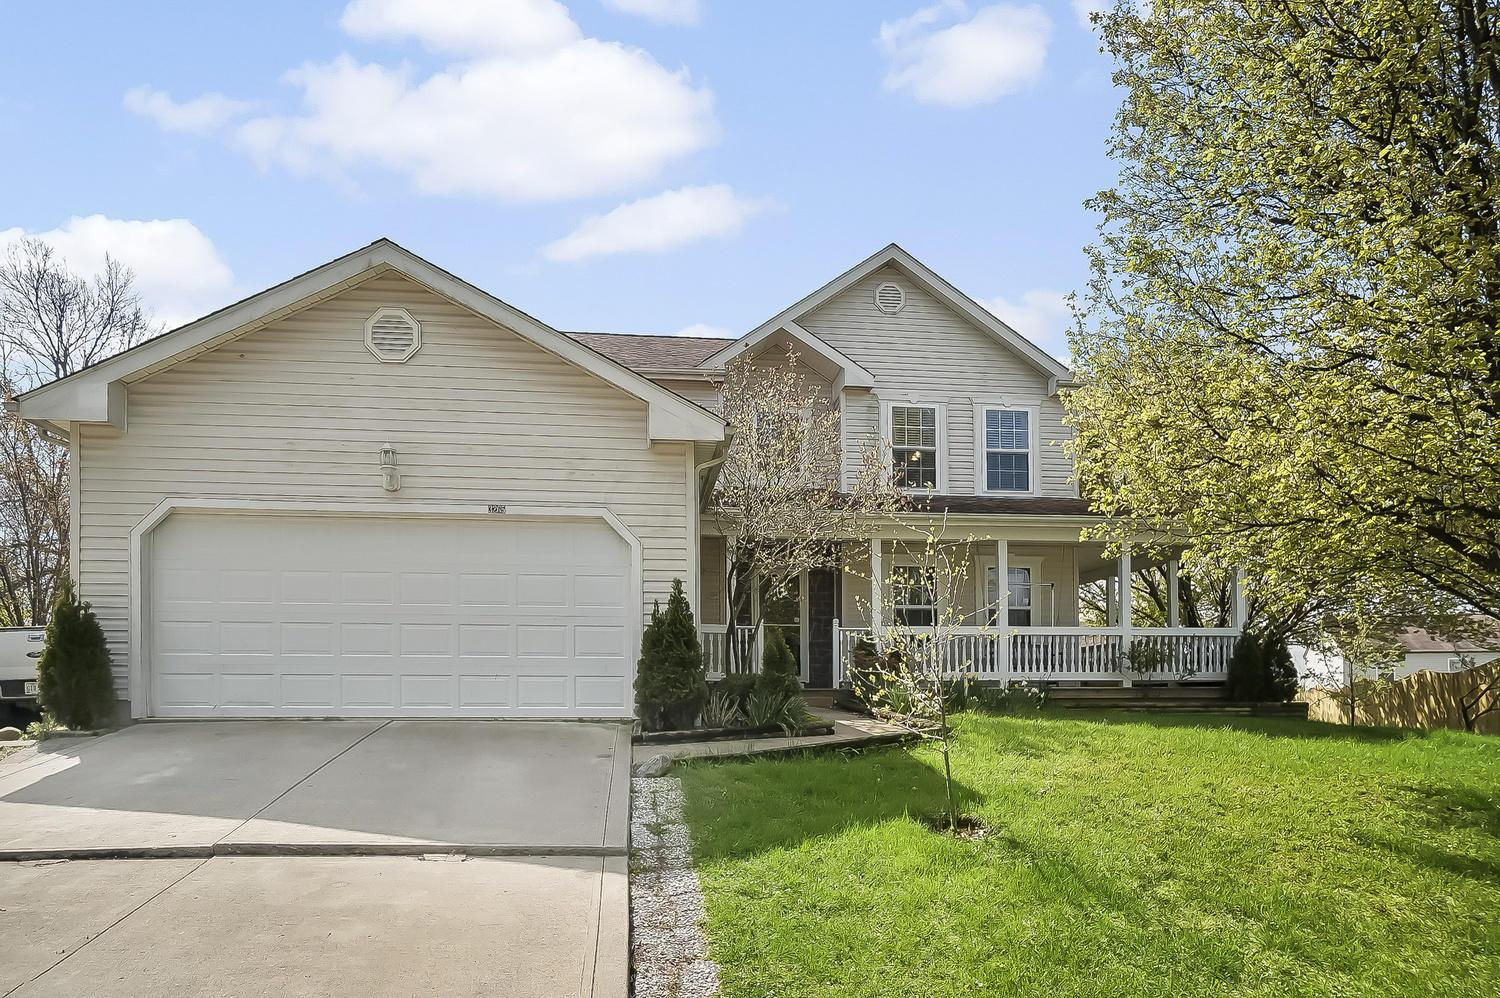 Photo of 3265 Falk Court, Groveport, OH 43125